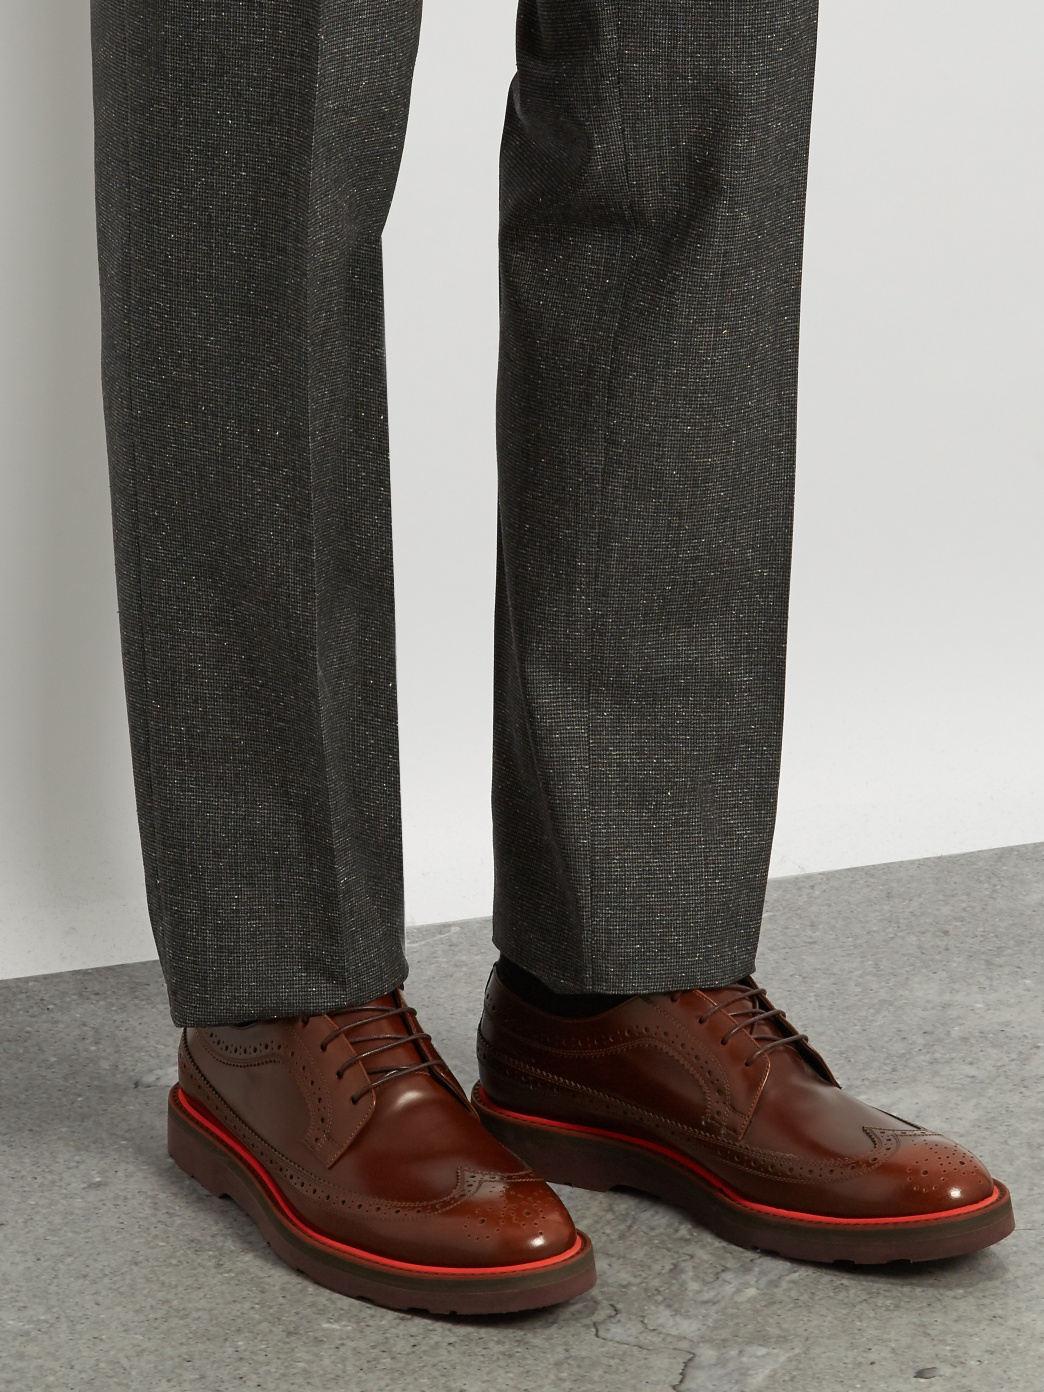 contrast sole shoes, paul smith, matches fashion